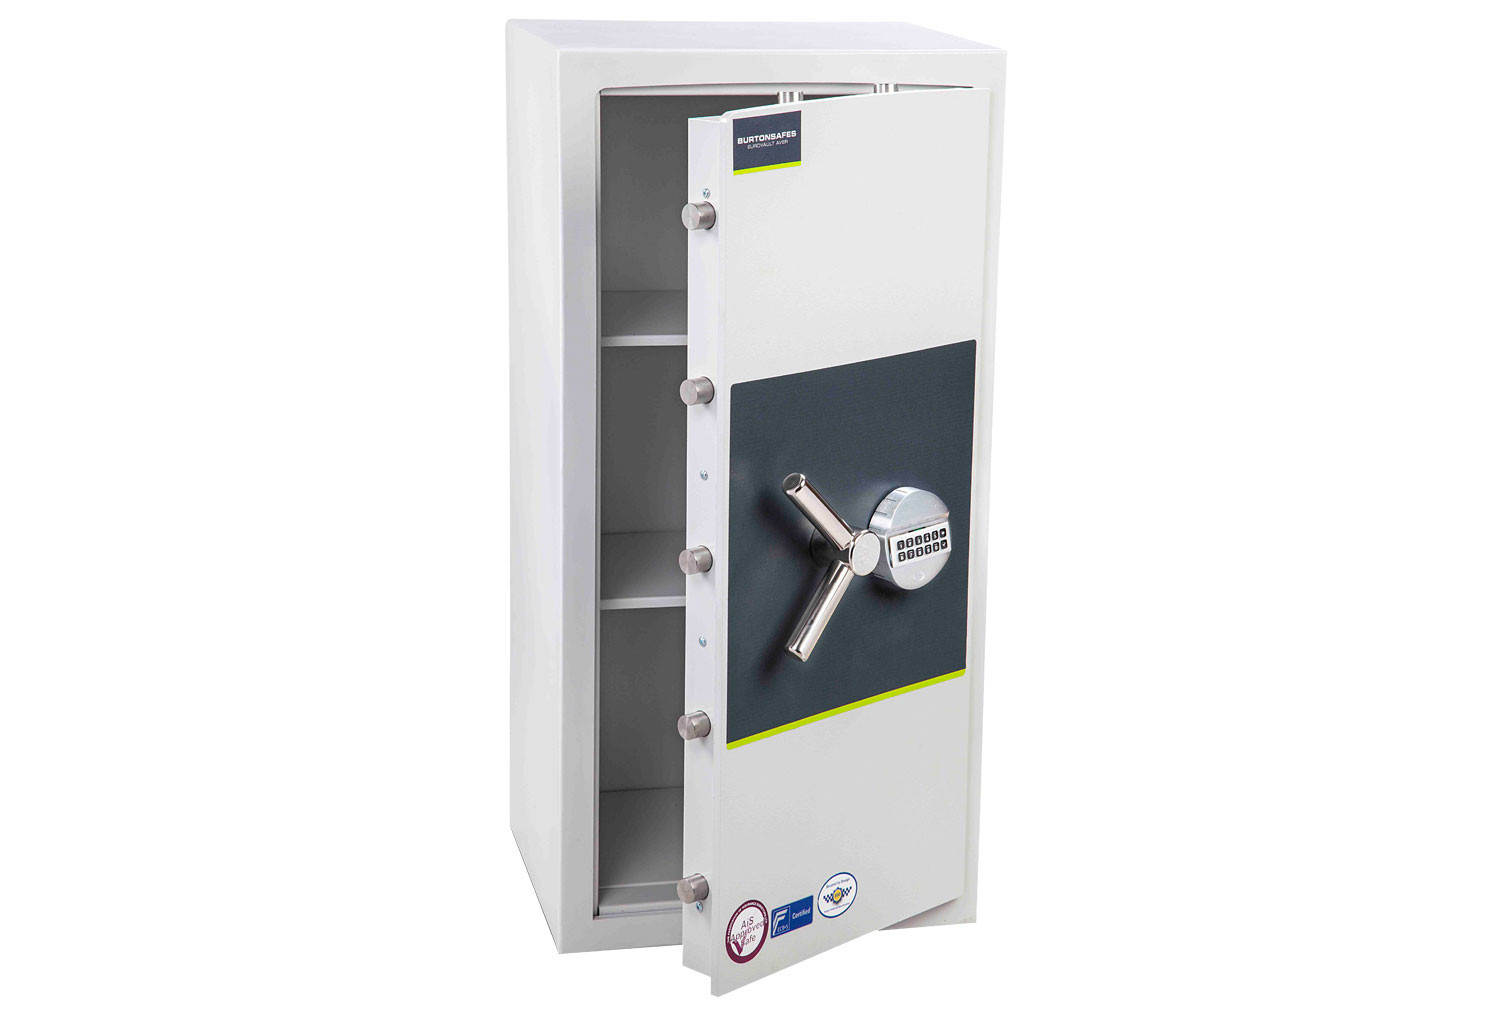 Burton Eurovault Aver Grade 1 Size 4 Safe With Electronic Lock (96ltrs)